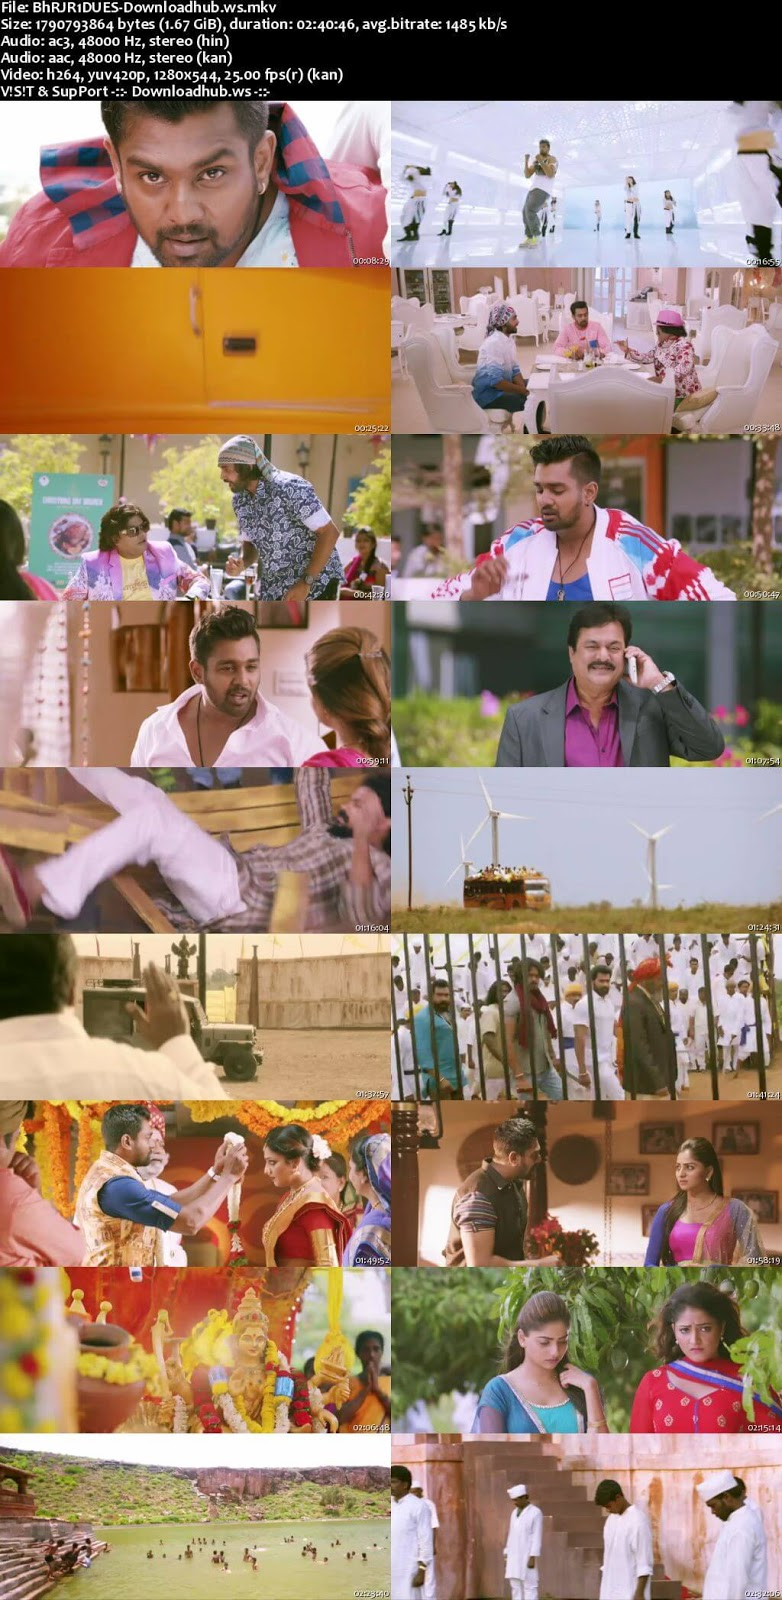 Bharjari 2017 UNCUT Hindi Dual Audio 720p HDRip Download